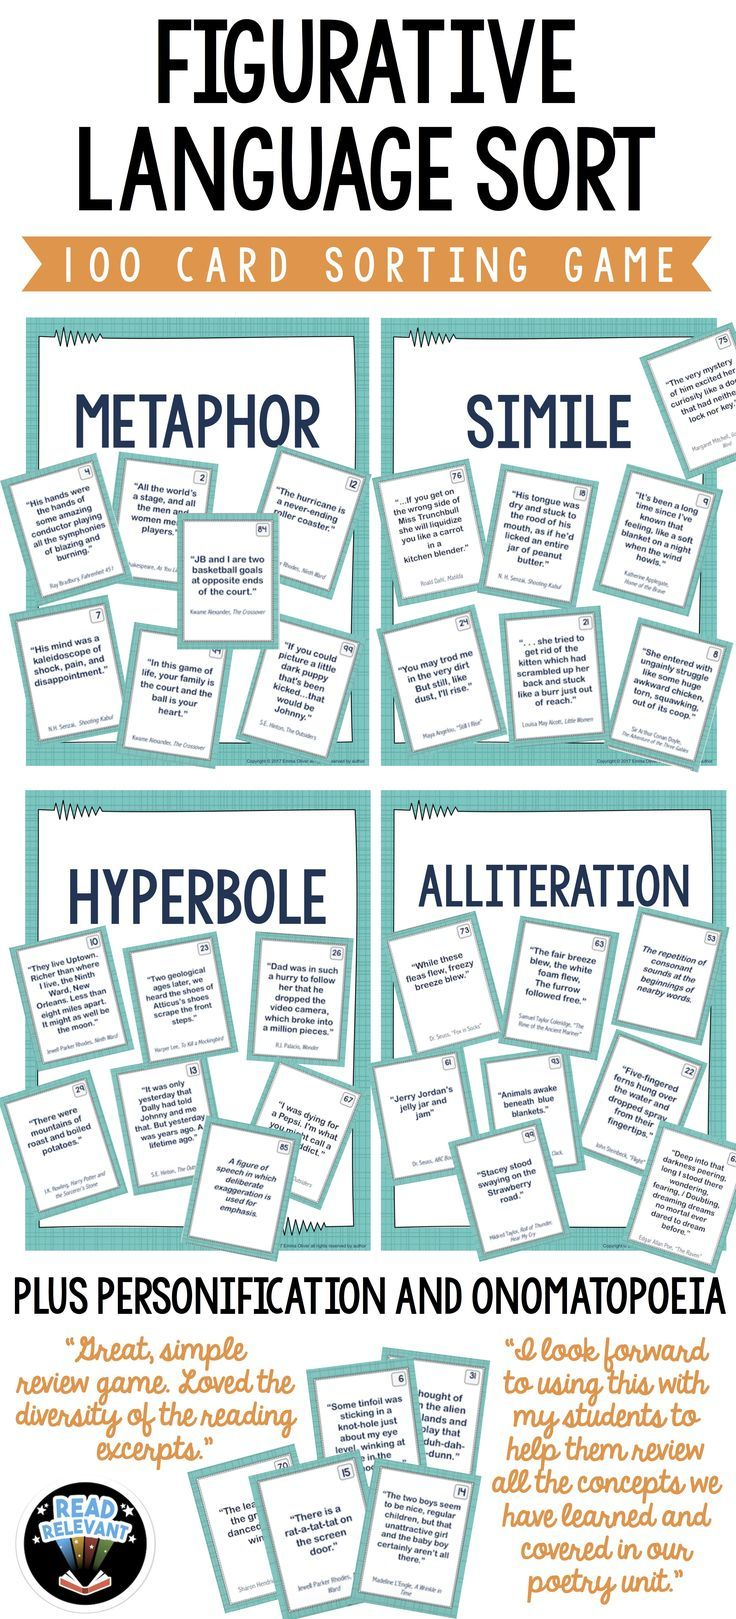 Use this fun and interactive sorting game to review and reinforce figurative language. These 100 cards each have examples of figurative language taken from real YA literature. Students will sort them into seven categories: metaphors, similes, personification, hyperboles, idioms, onomatopoeia, alliteration.